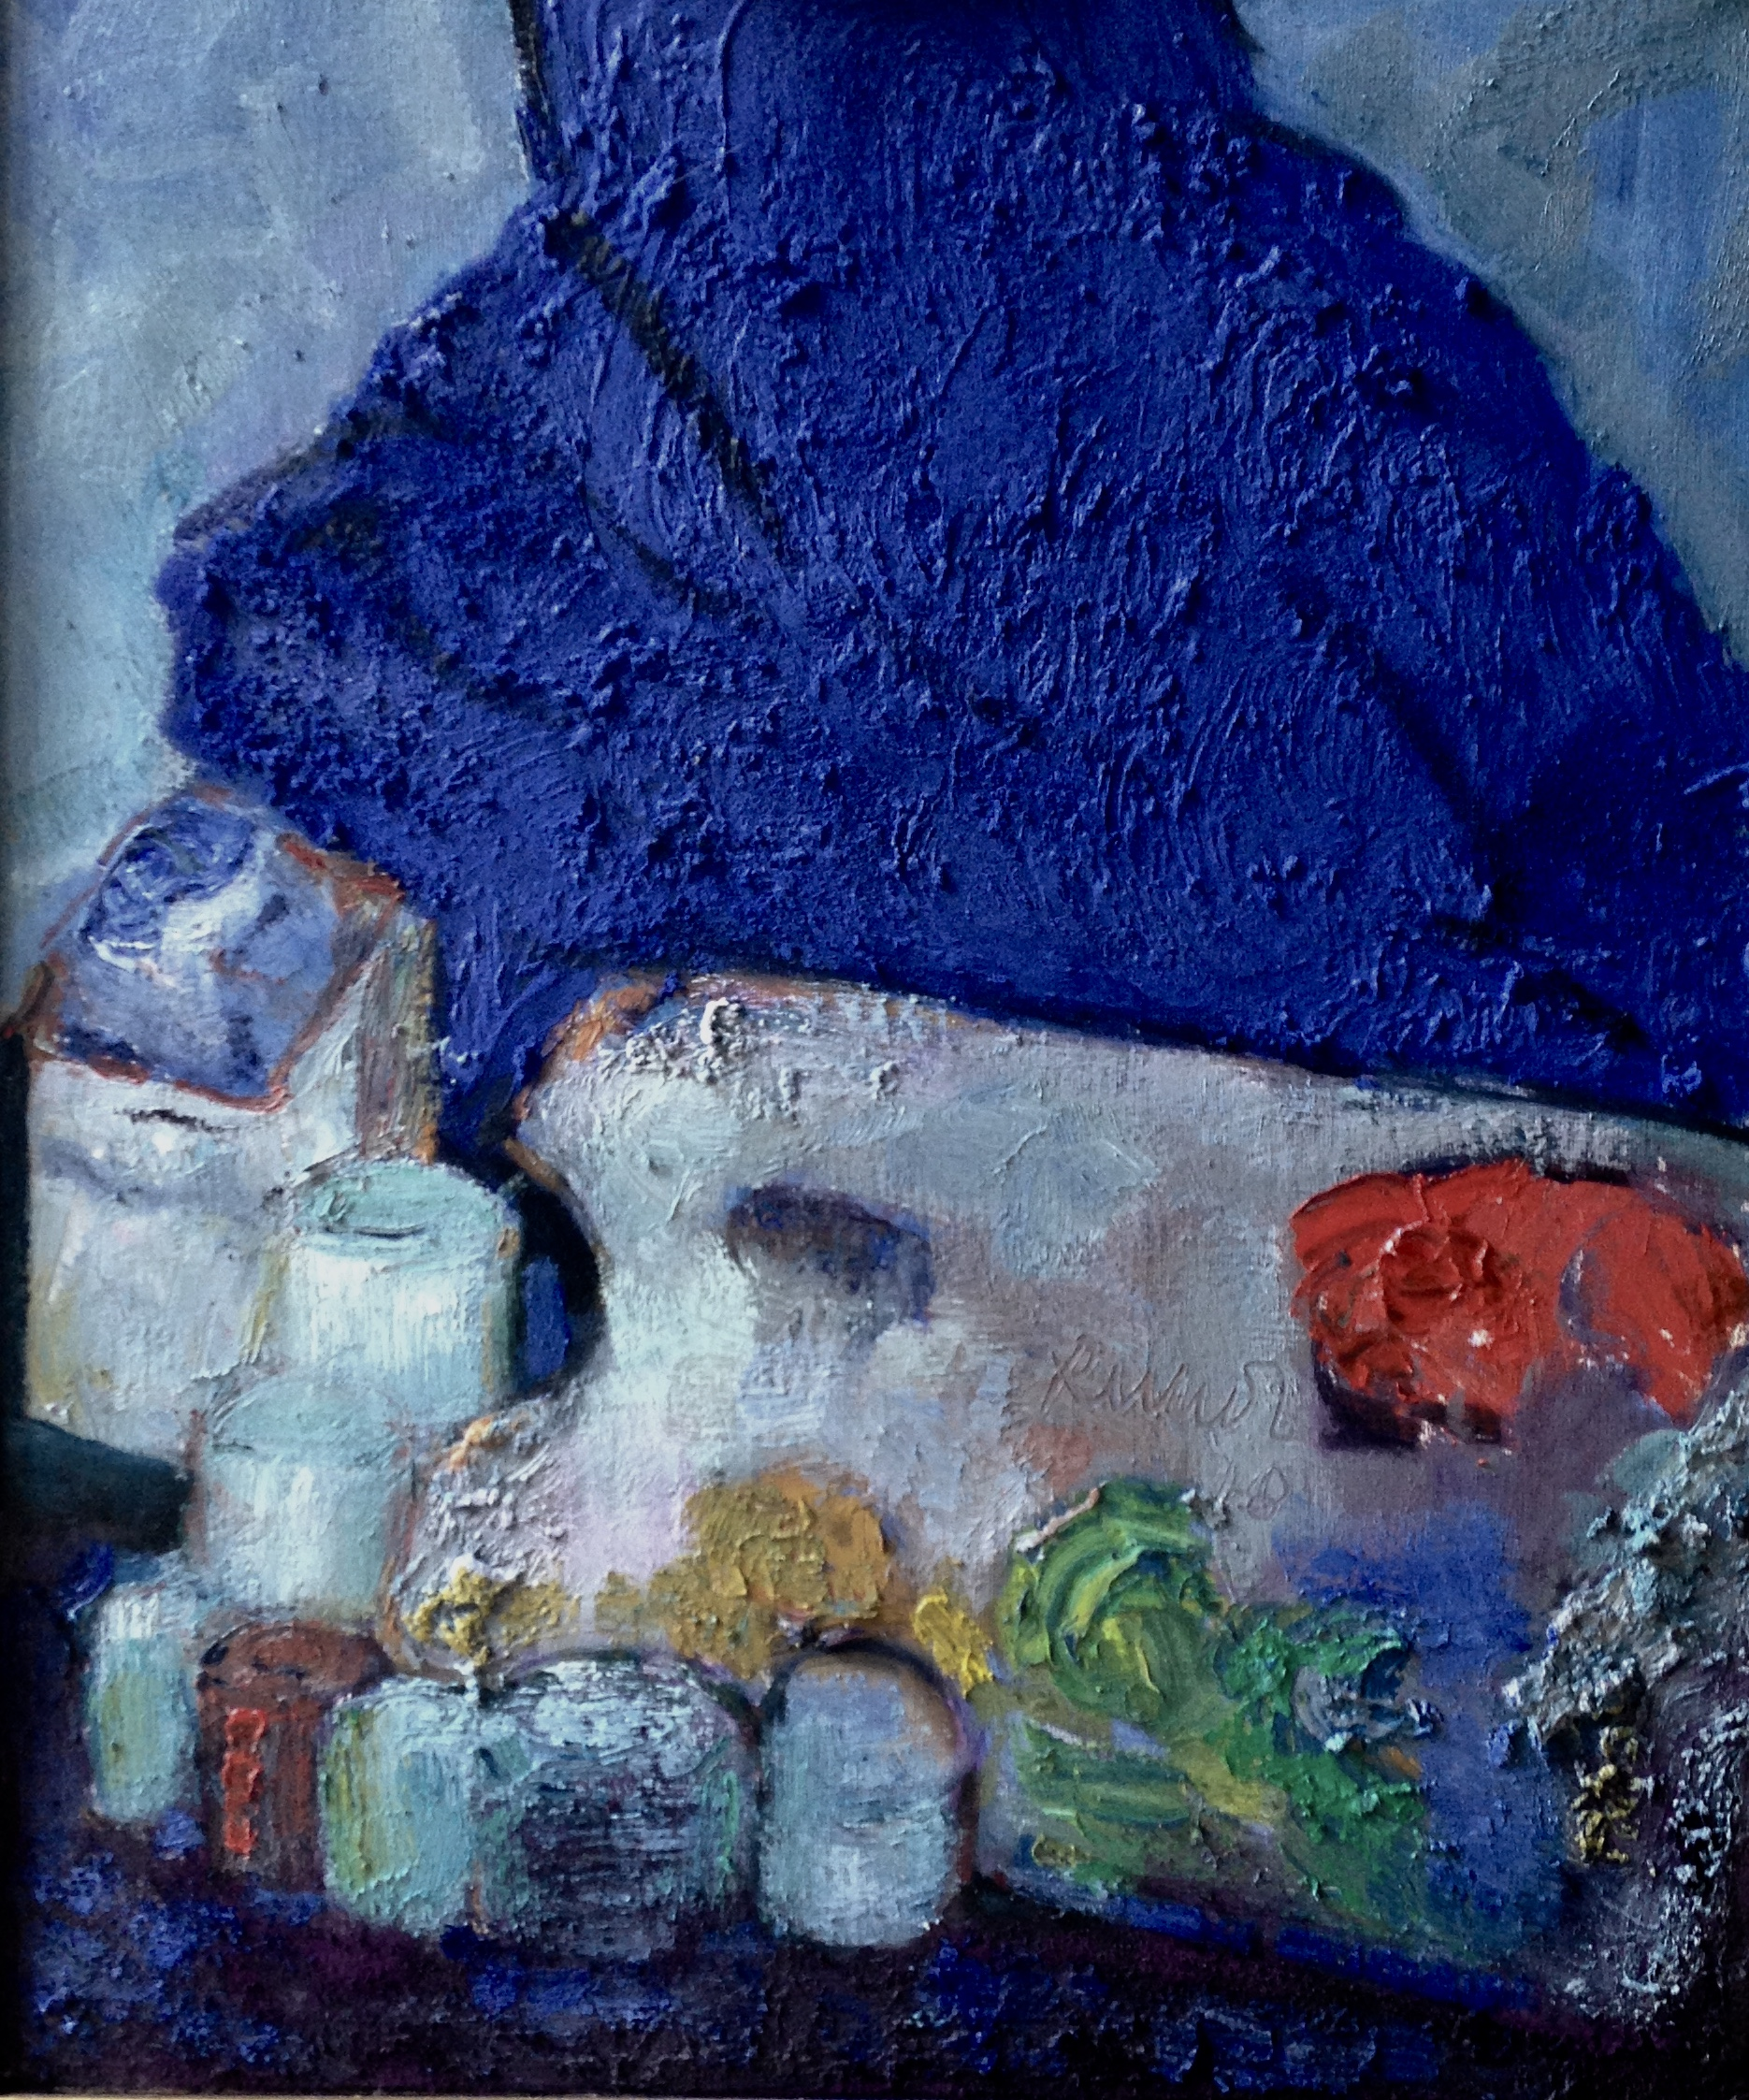 stillife oli on canvas and pigment  60x50 cm 2018